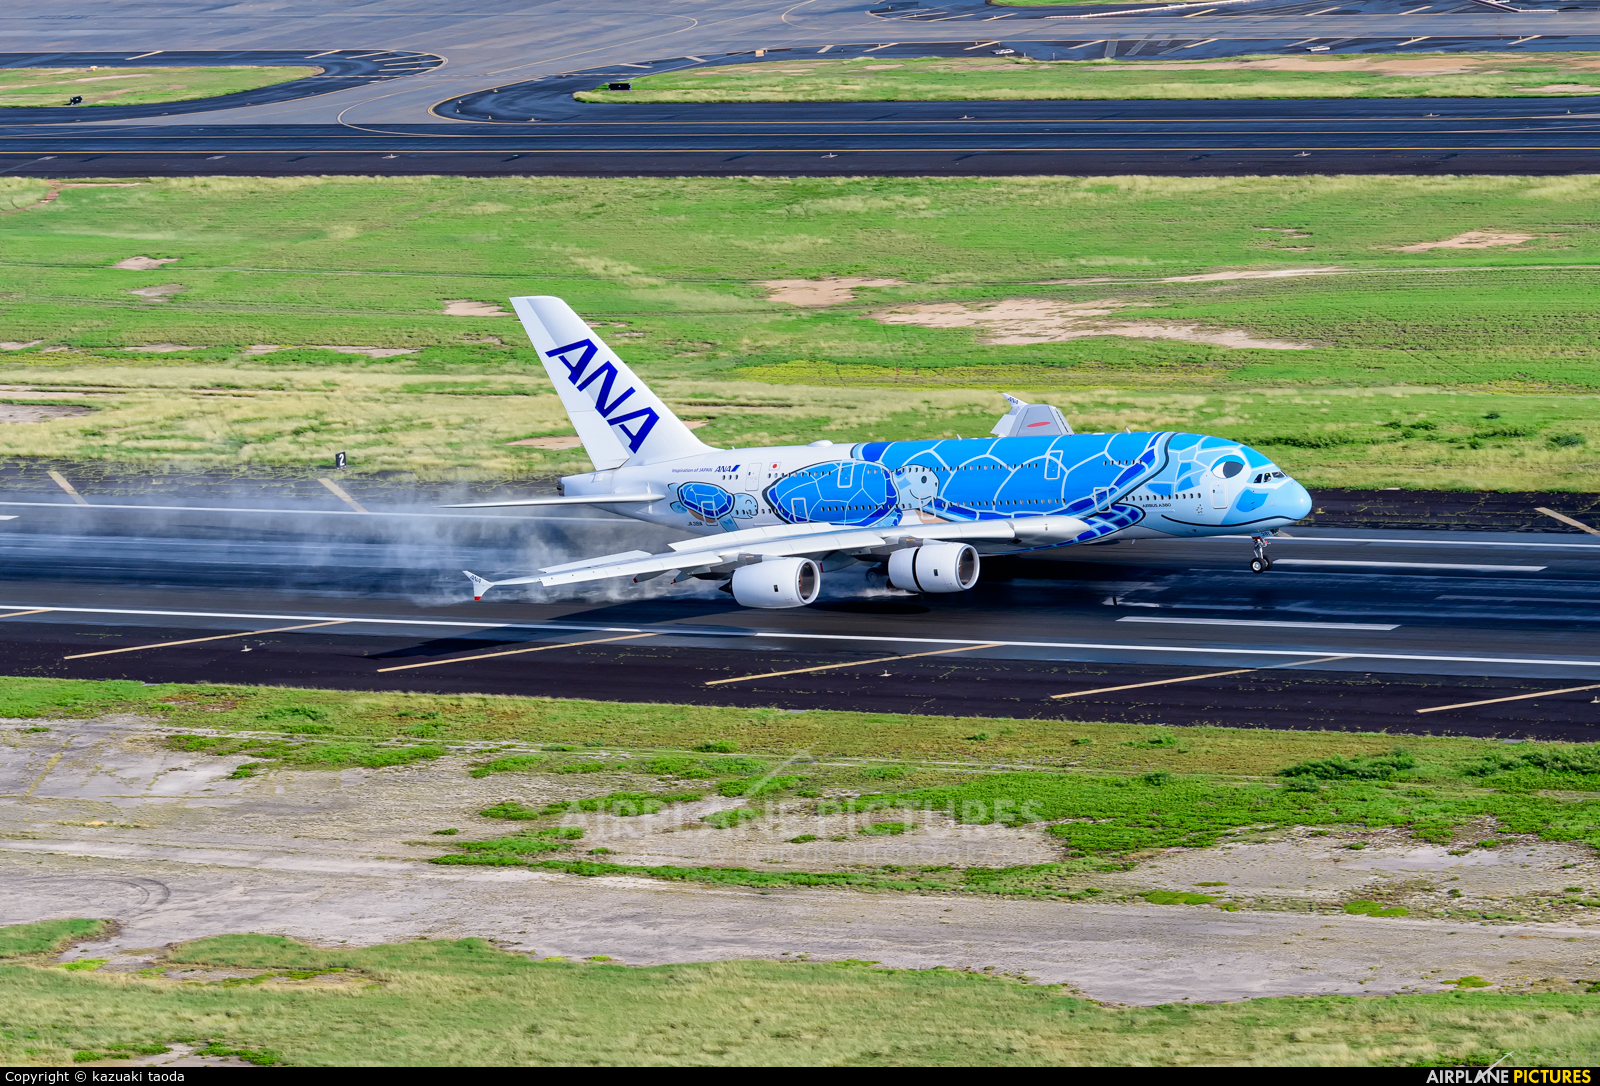 ANA - All Nippon Airways JA381A aircraft at Honolulu Intl